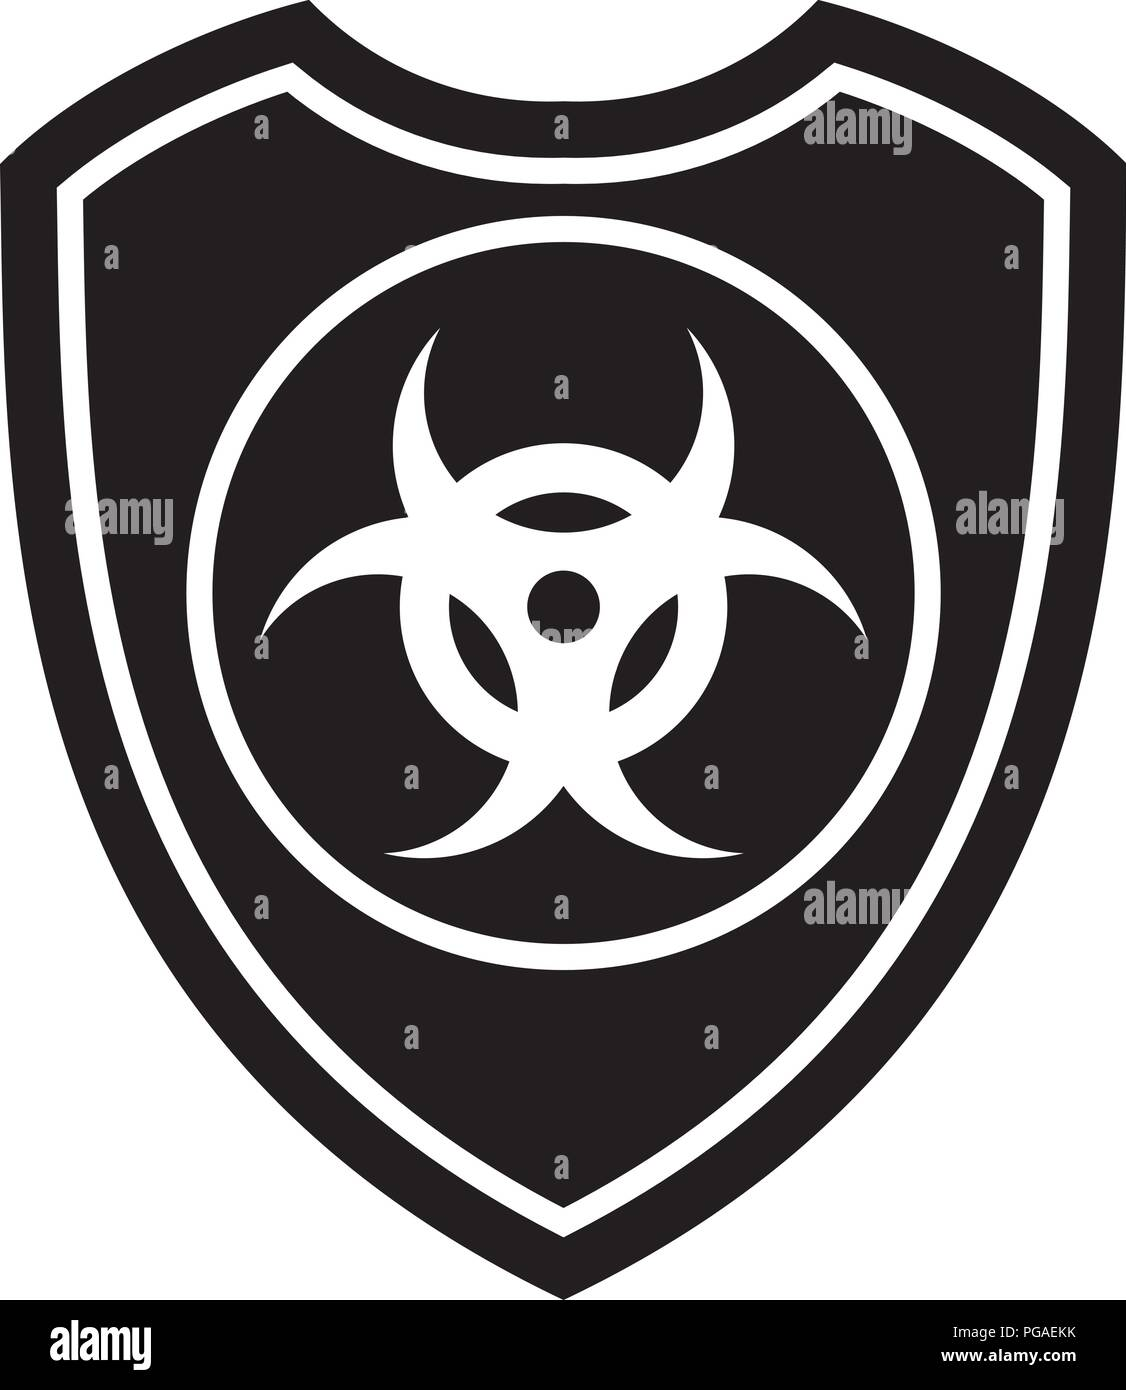 Icon Of Biohazard Shield Defense Protection Or Safety Symbol Sign